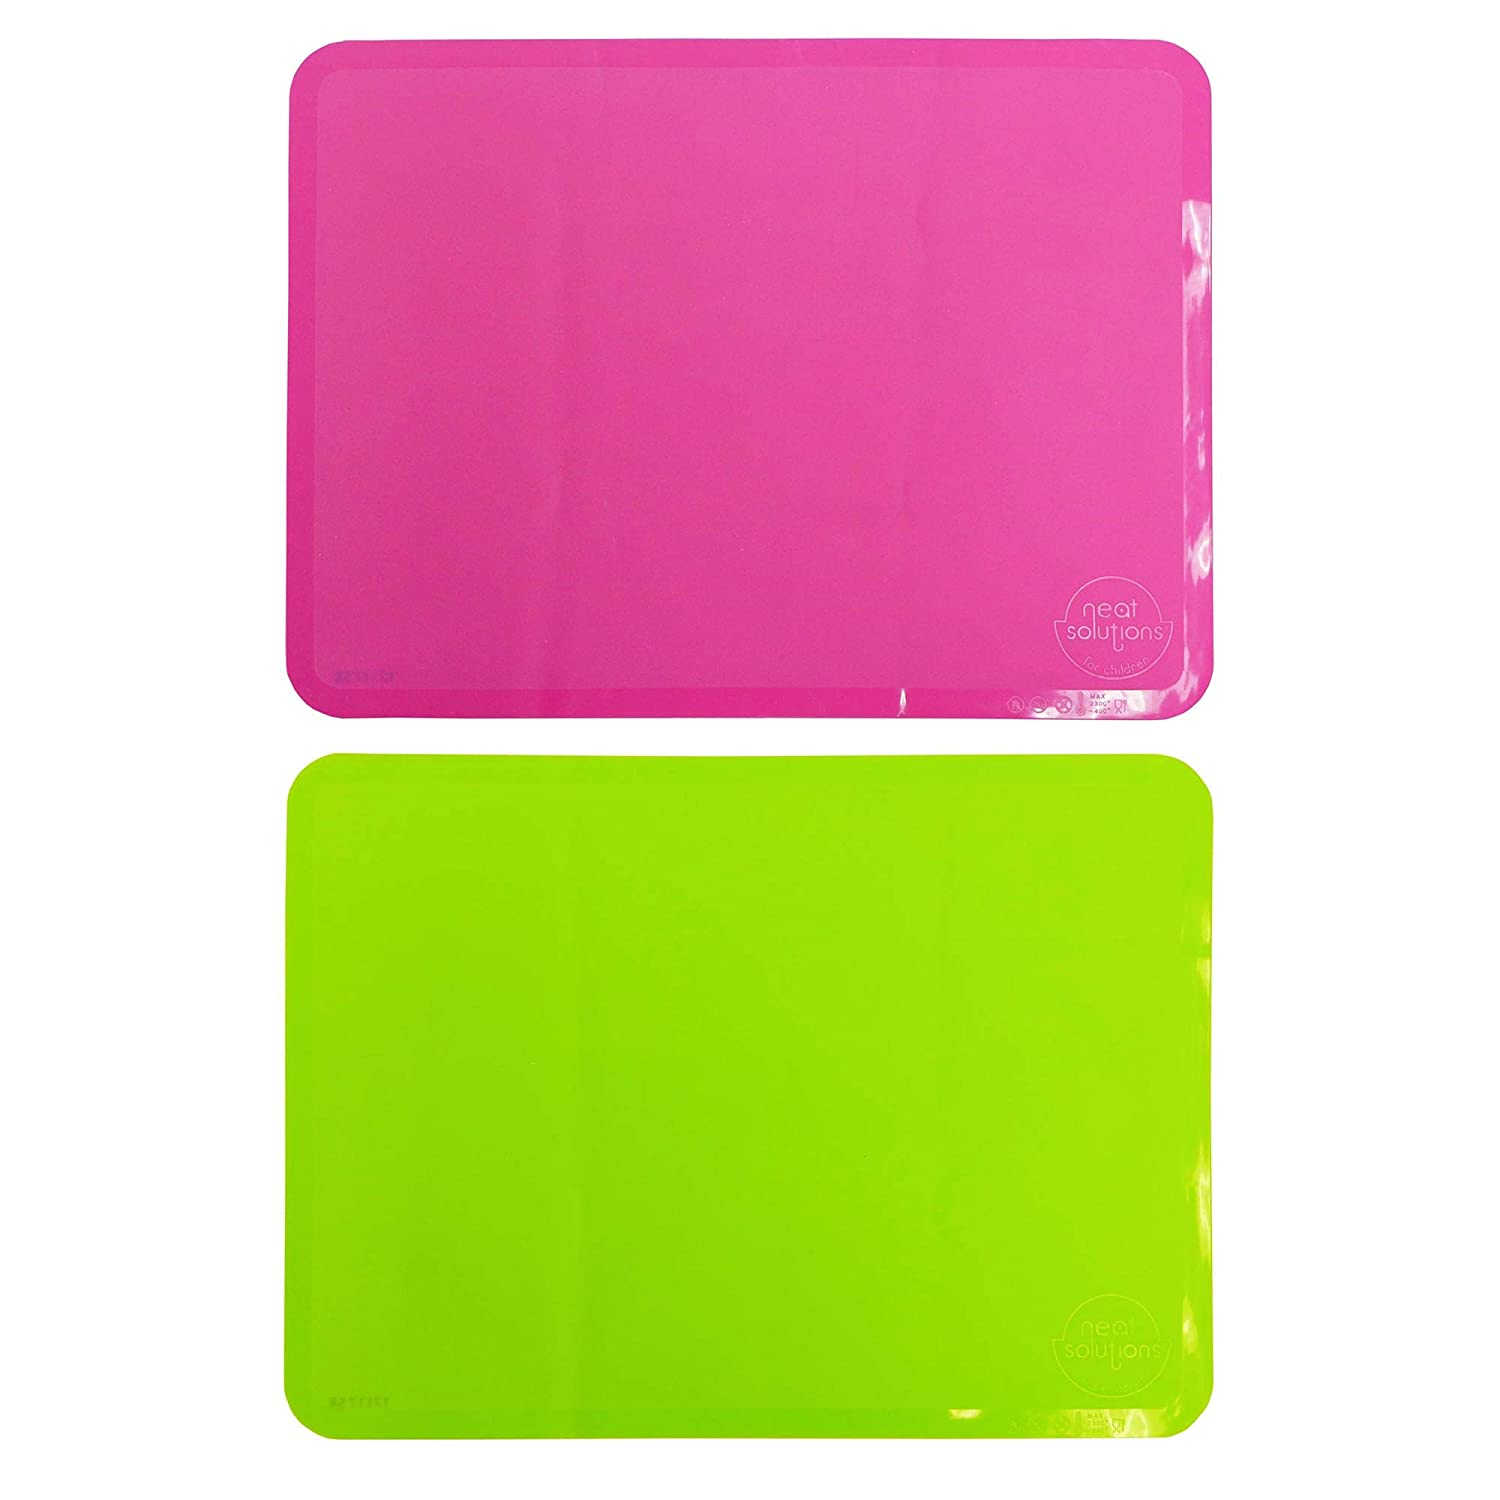 Neat Solutions Sili-Stick Reusable Table Topper 2 Pack, Pink/Green